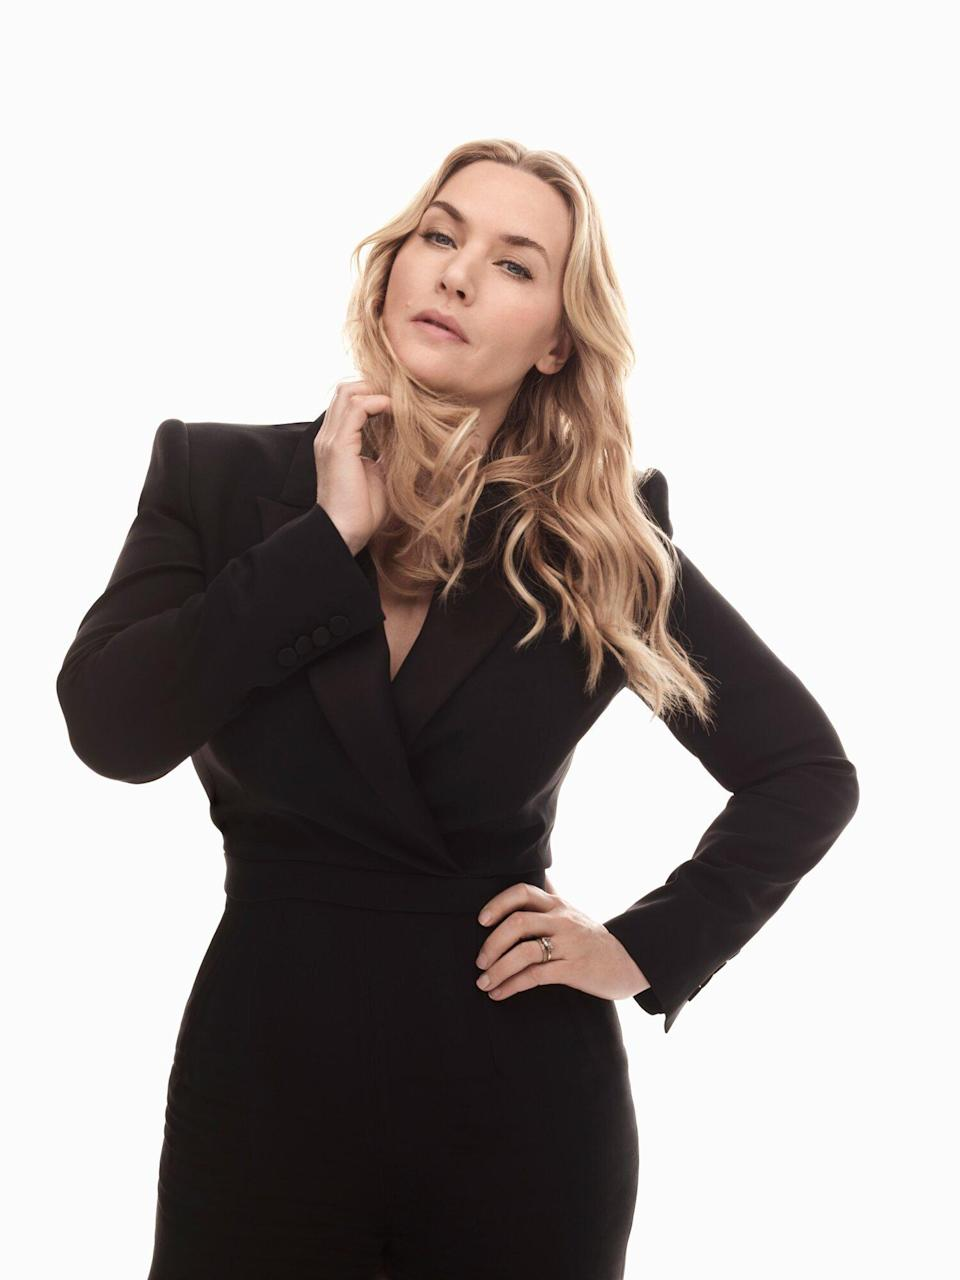 Kate Winslet/L'Oreal